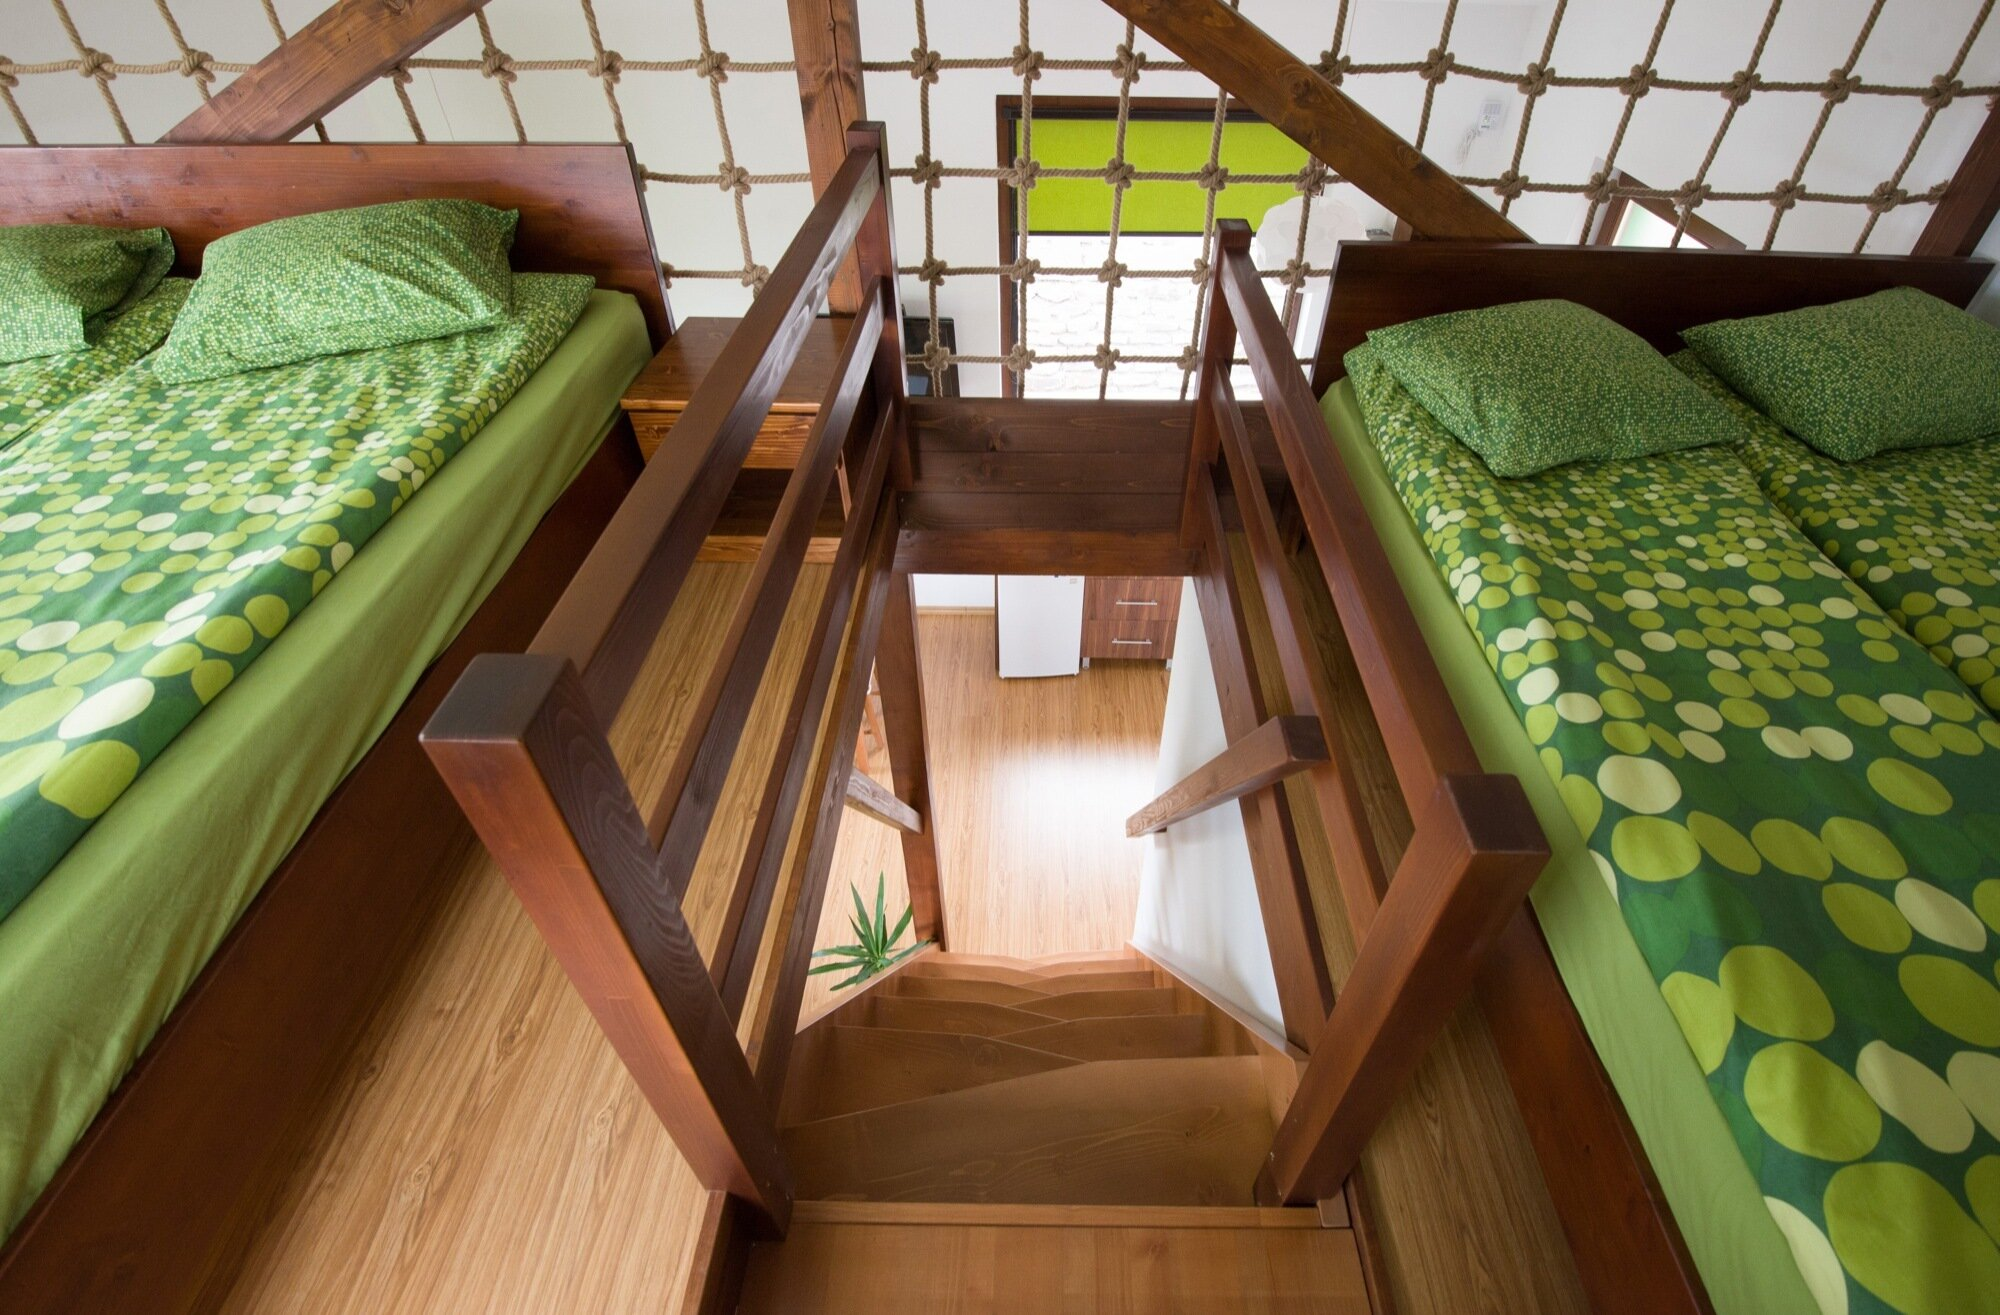 Bungalows - BLIPSZ - Romania - Lofted Bedroom - Humble Homes